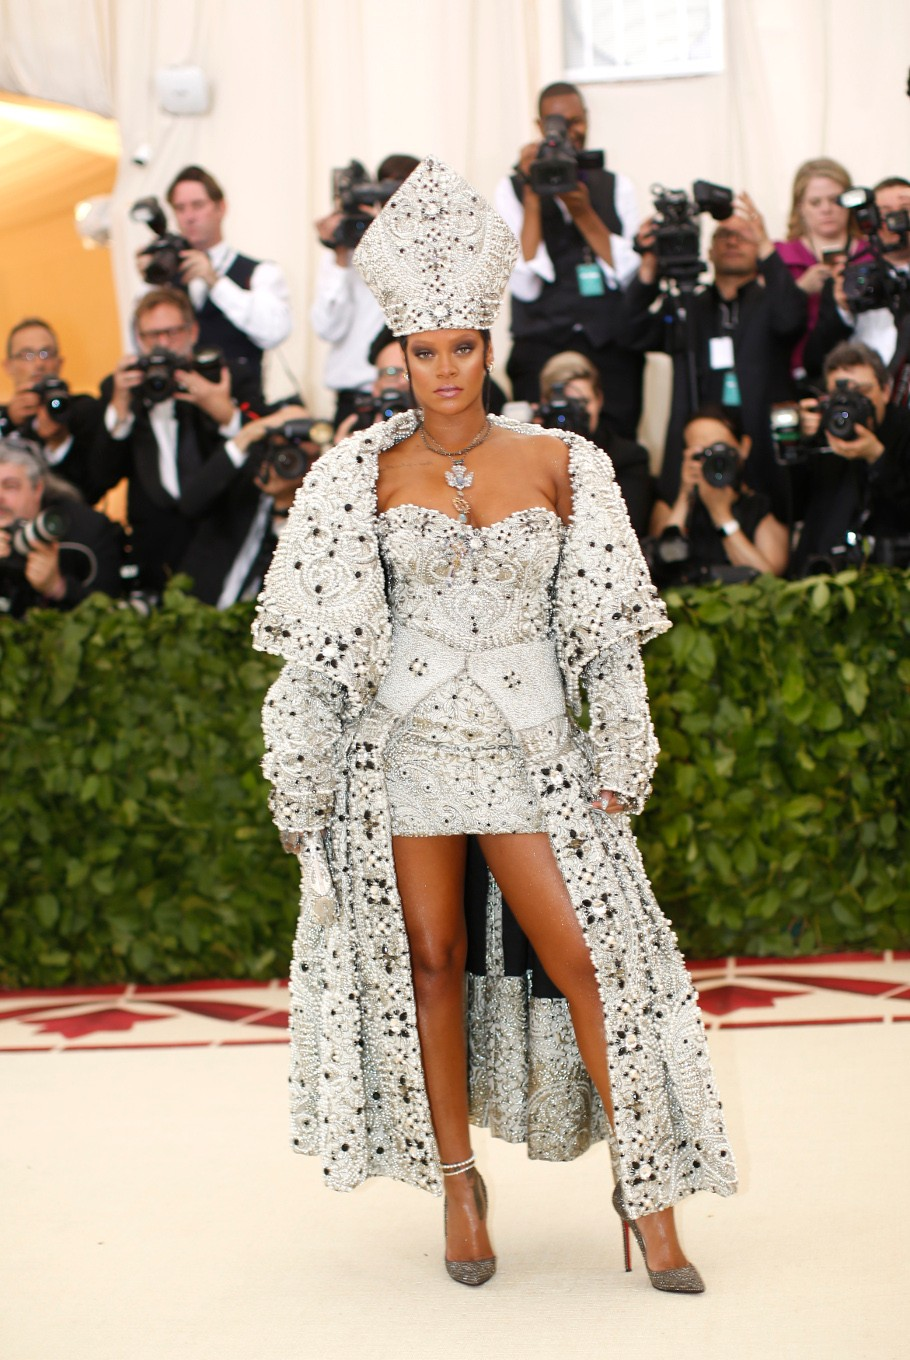 Singer Rihanna arrives at the Metropolitan Museum of Art Costume Institute Gala (Met Gala) to celebrate the opening of 'Heavenly Bodies: Fashion and the Catholic Imagination' in the Manhattan borough of New York, U.S., May 7, 2018.